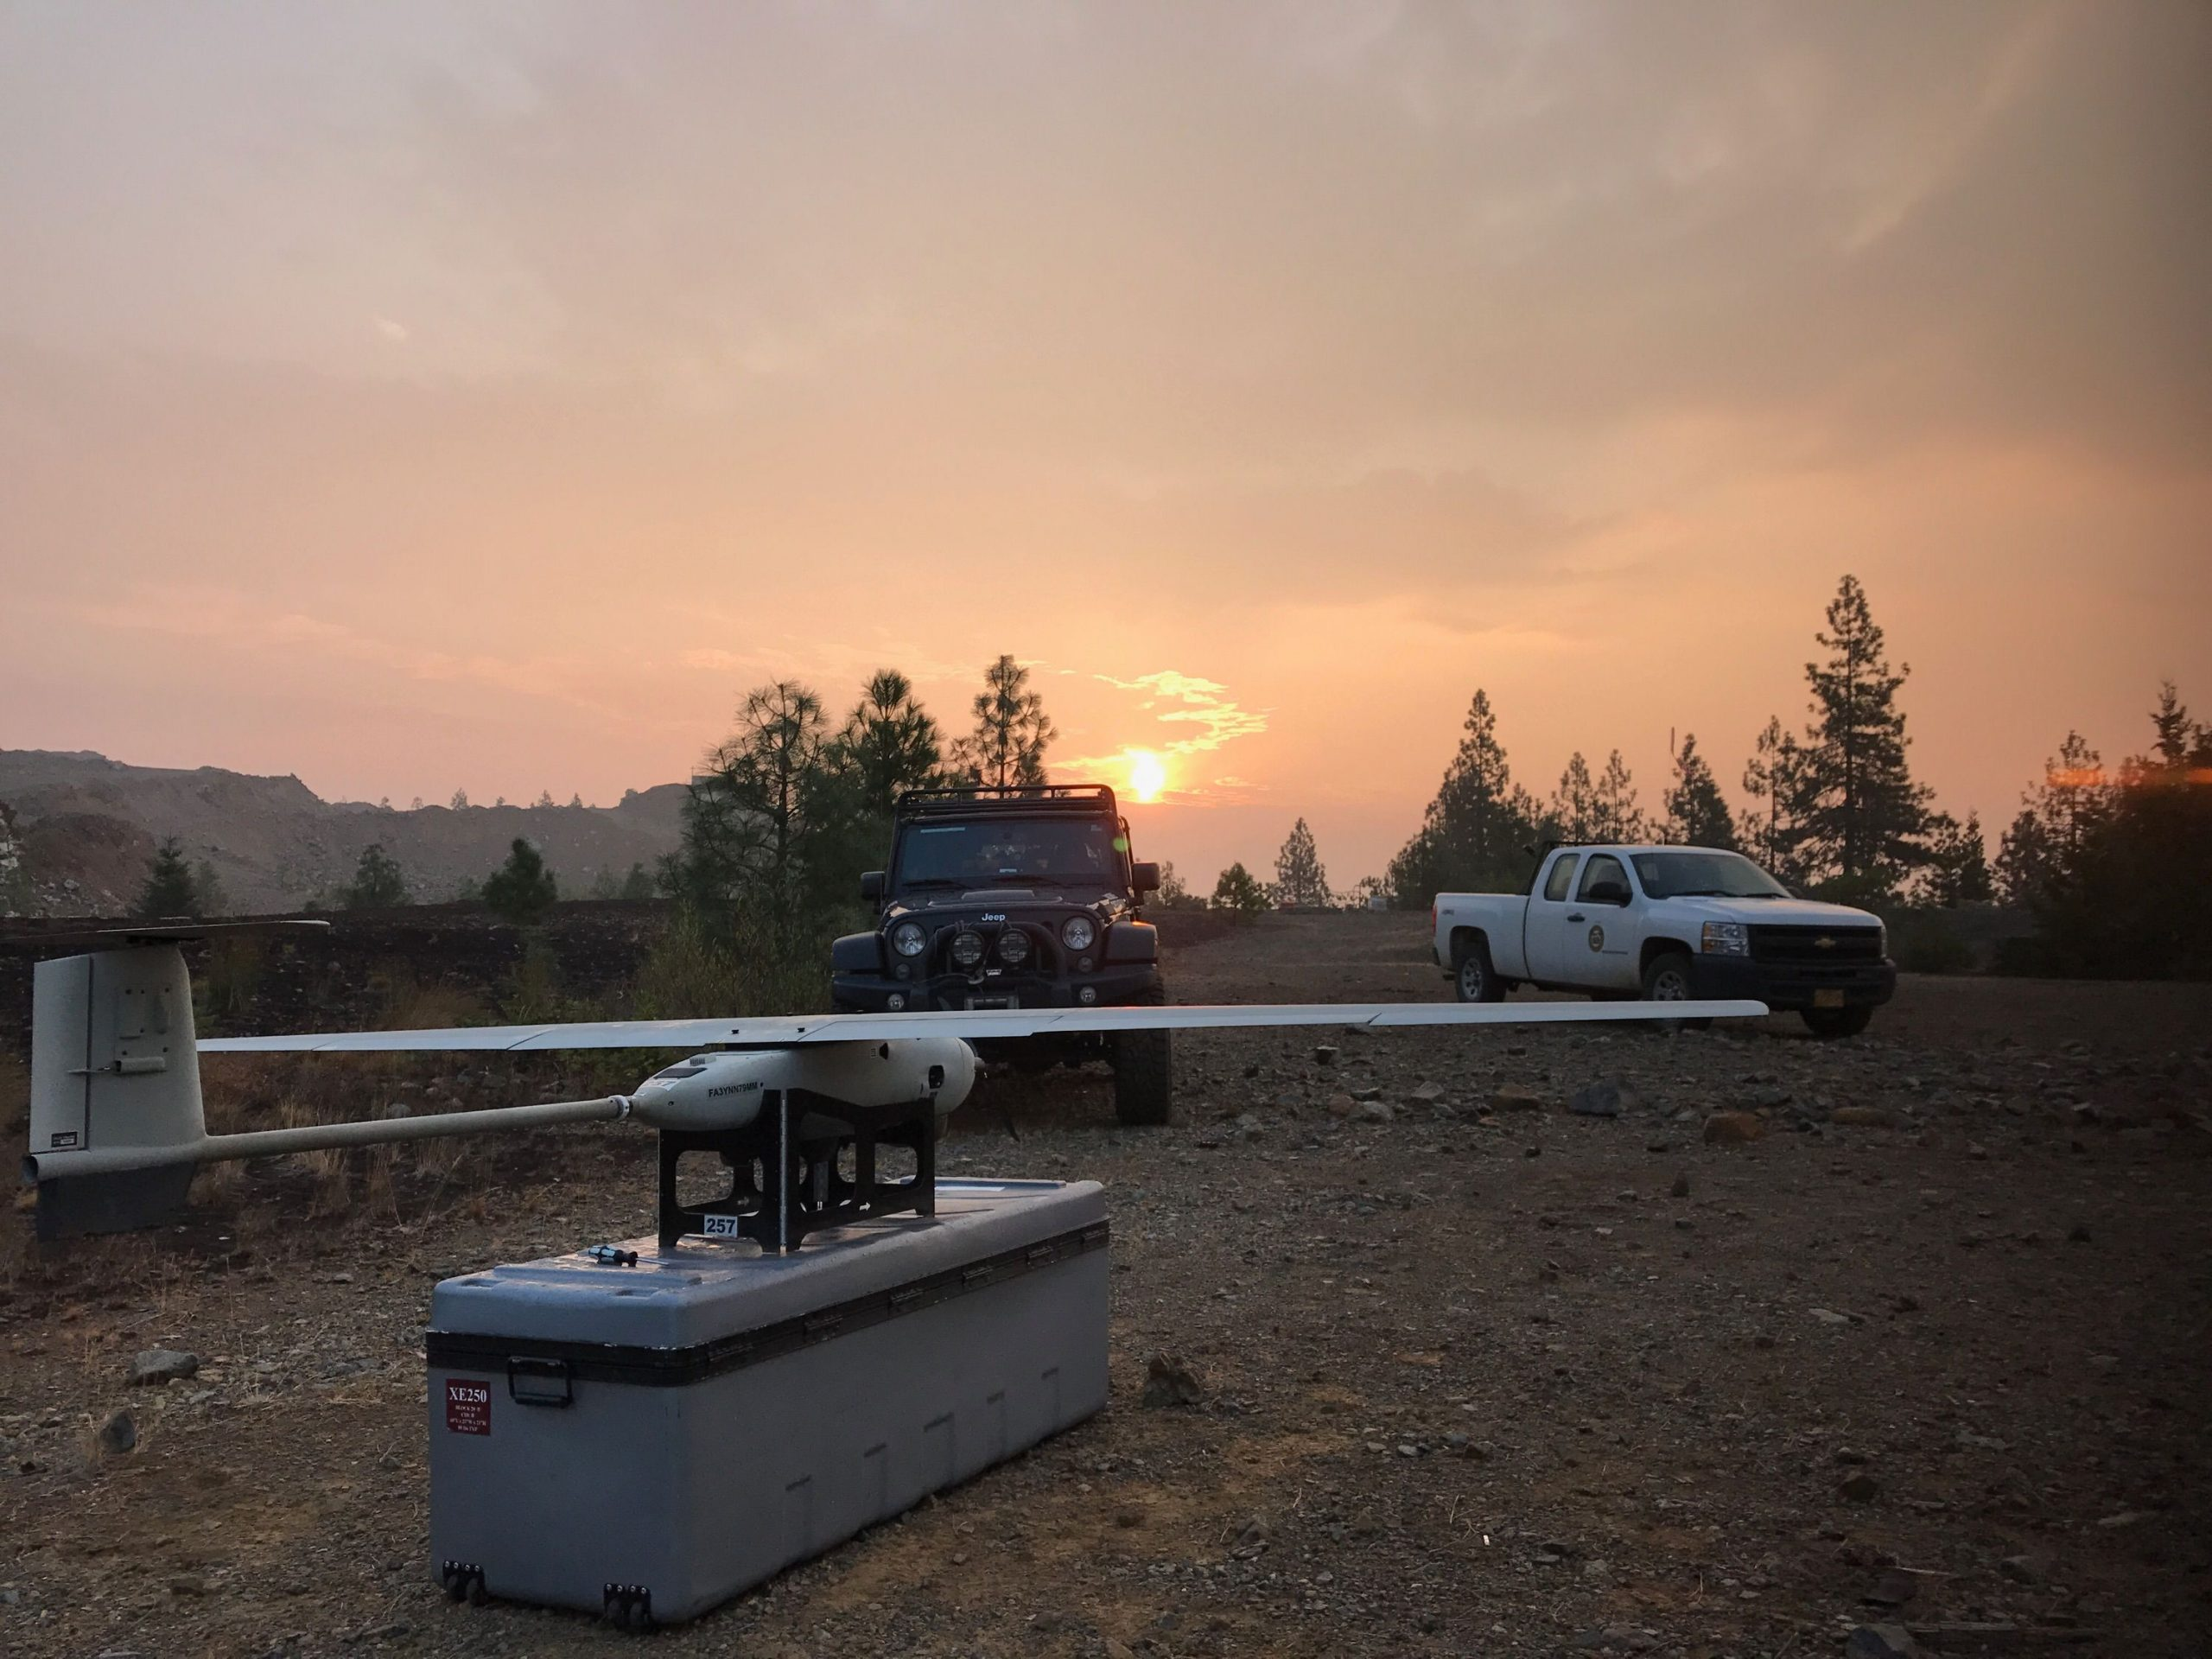 A drone monitoring a wildfire with USFS